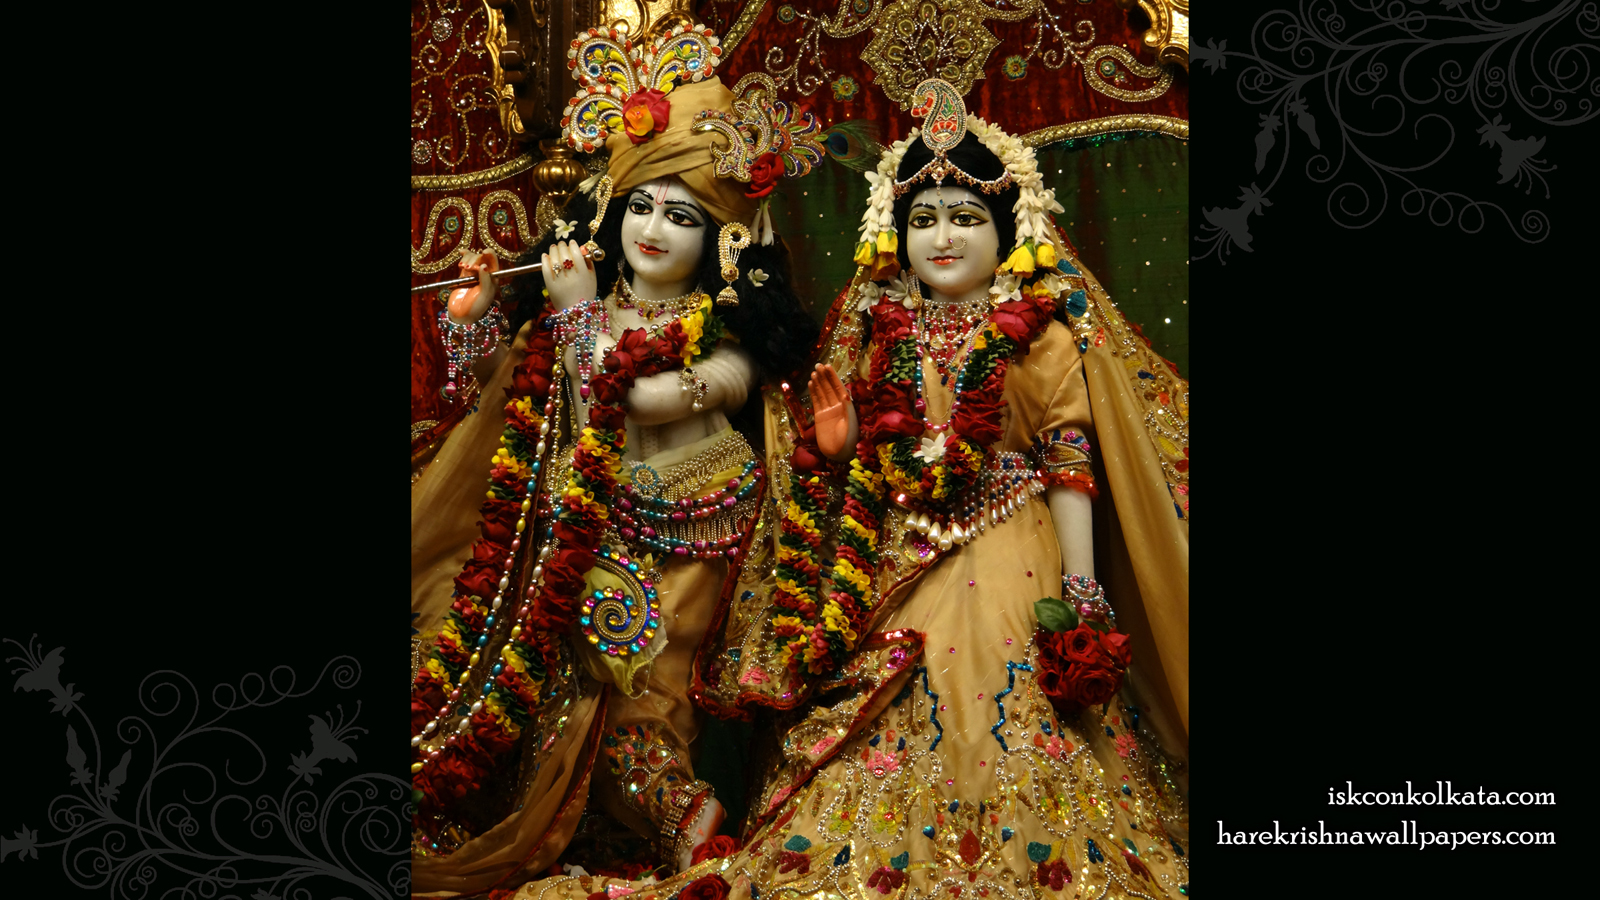 Sri Sri Radha Govinda Wallpaper (004) Size 1600x900 Download